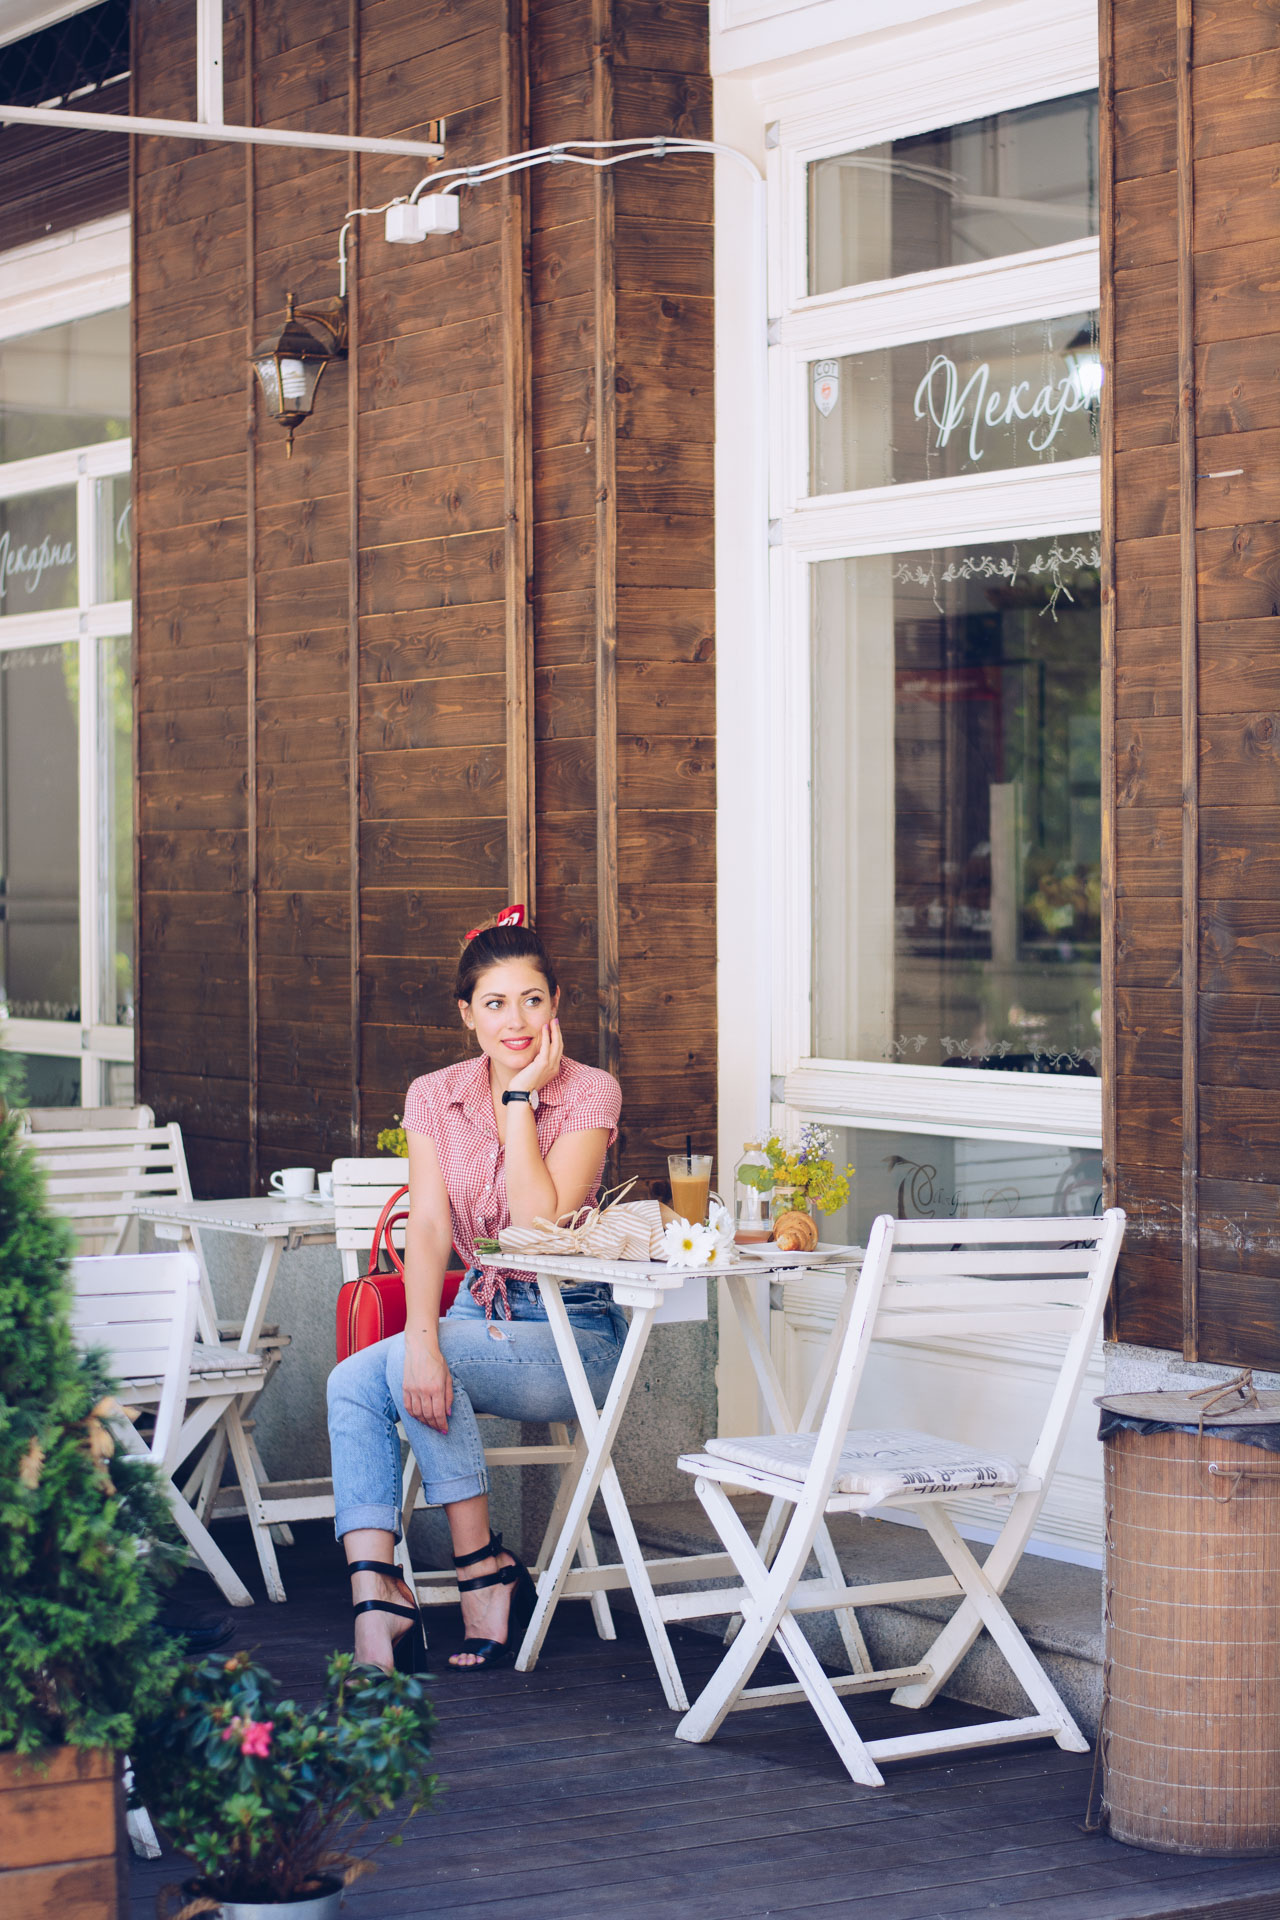 20170531 Coffee afternoon retro chic